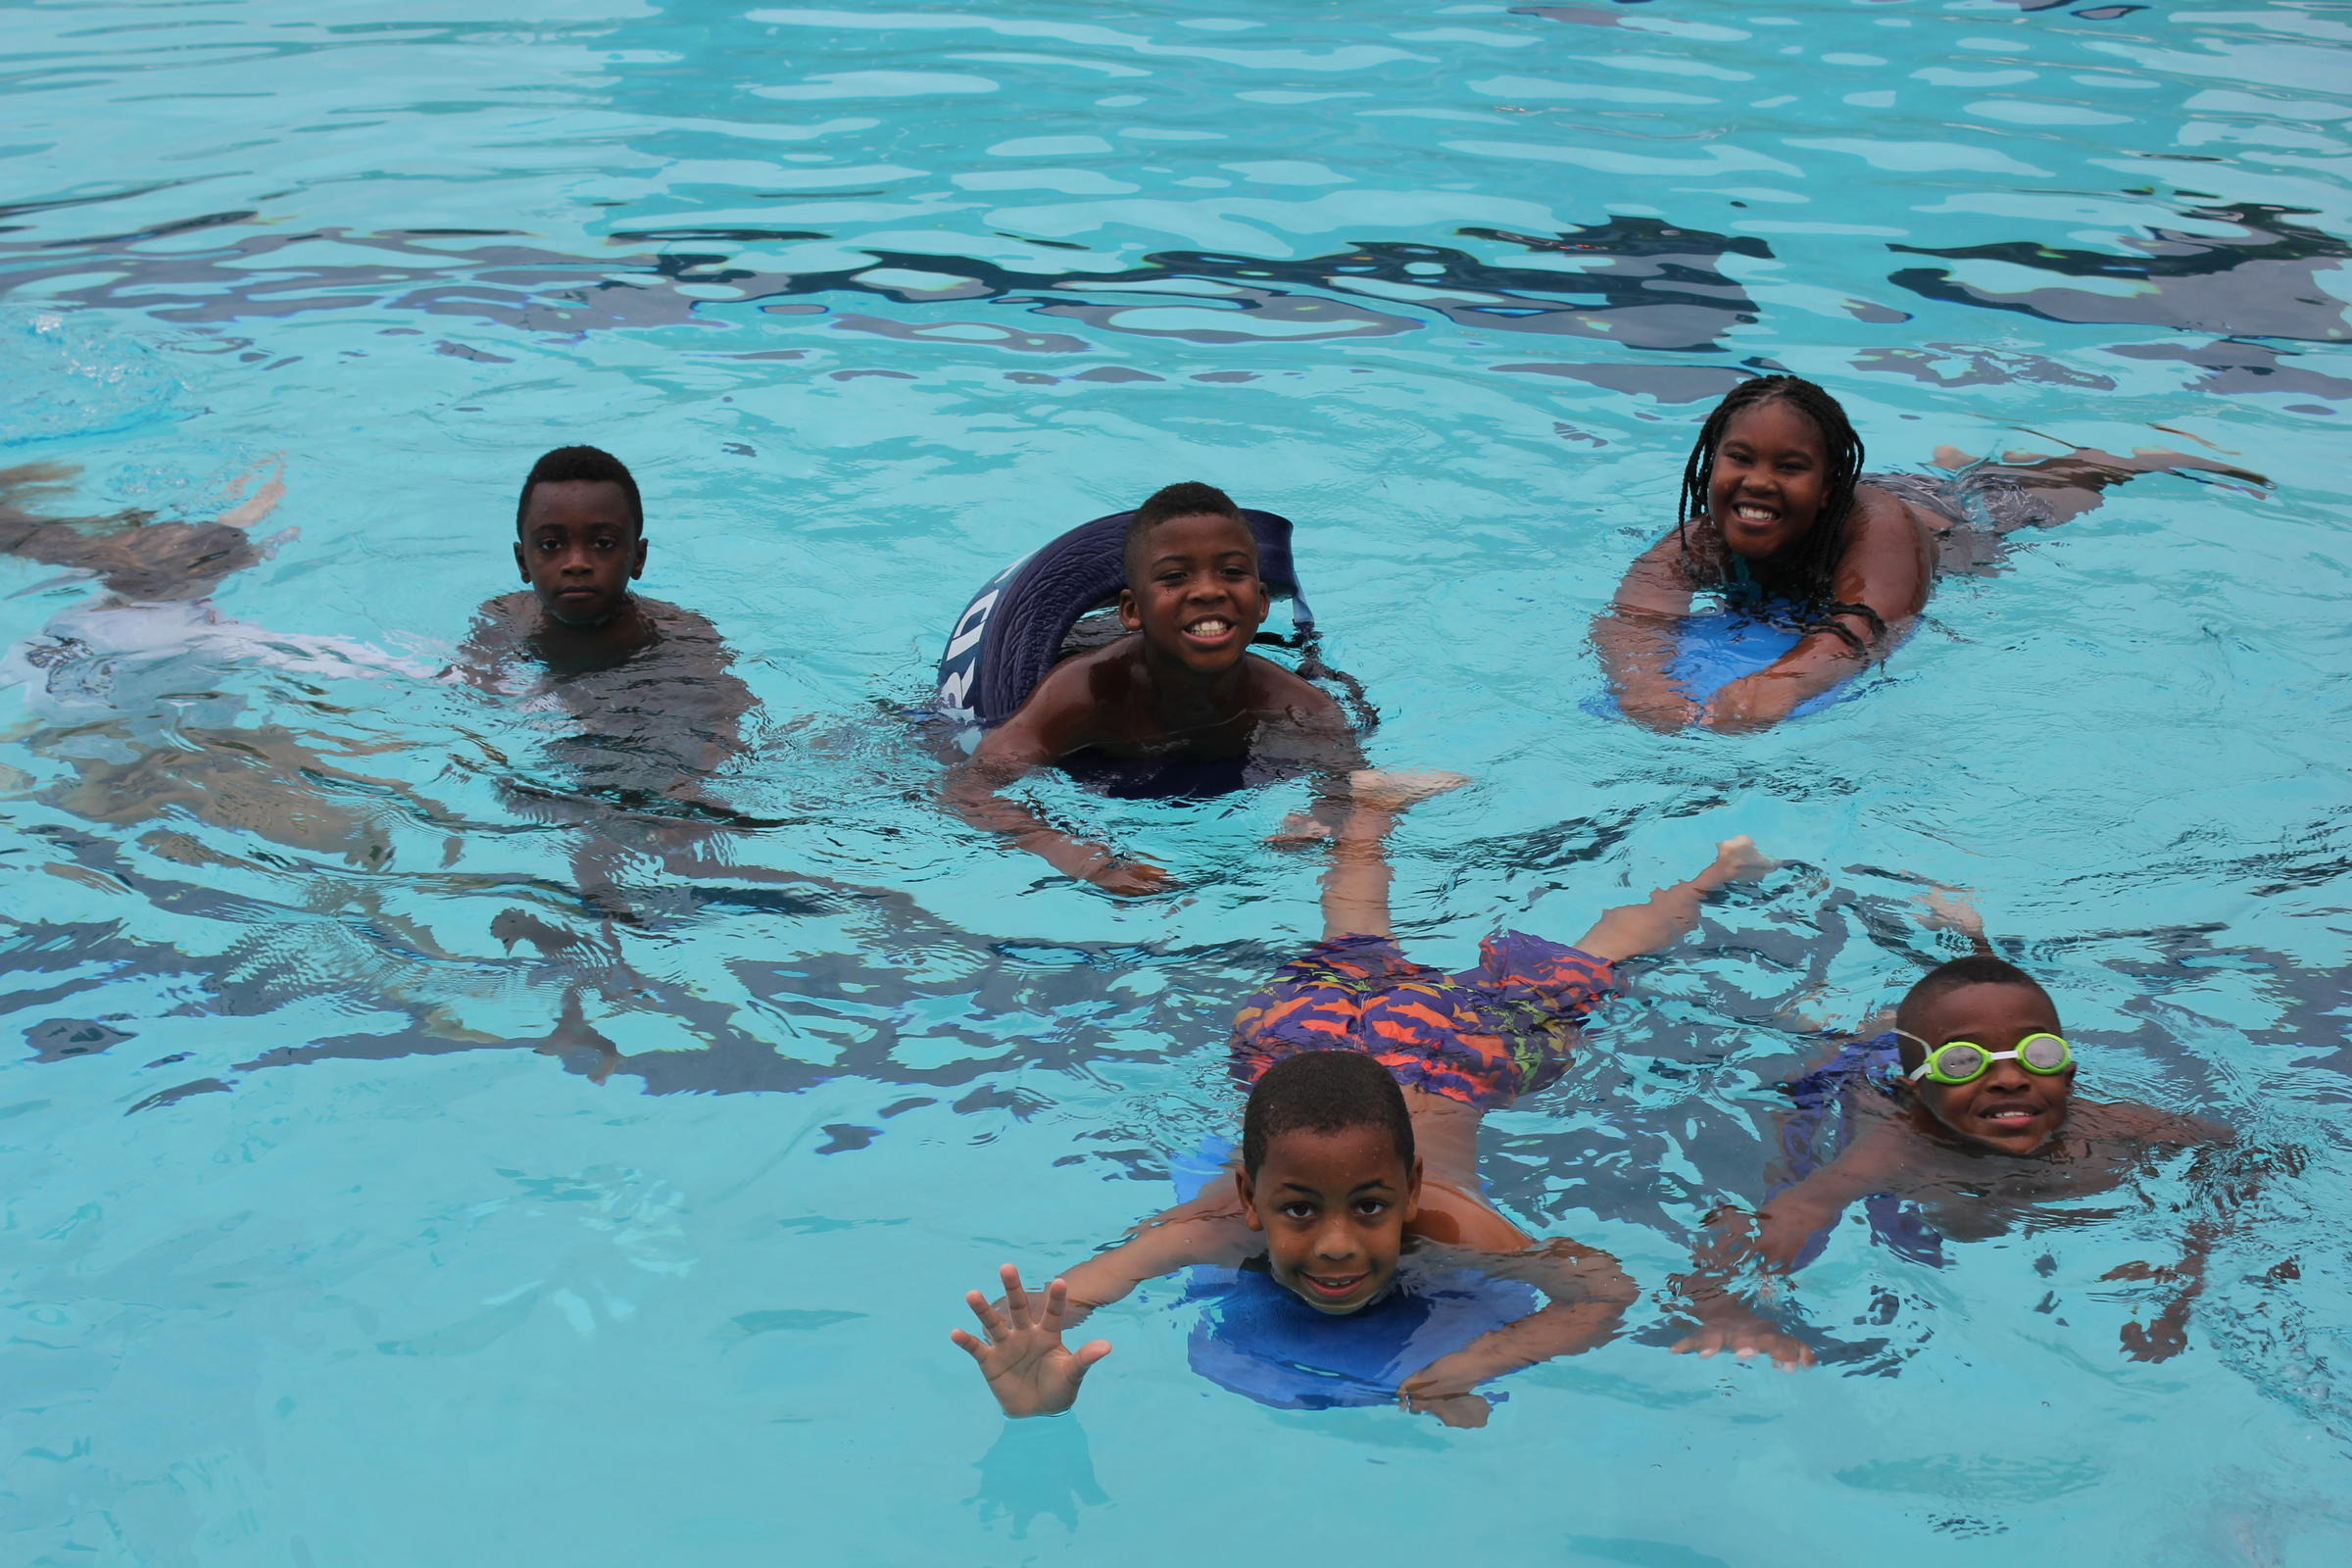 Ransom Everglades Offers Swim Lessons To Kids Without Pools Wlrn